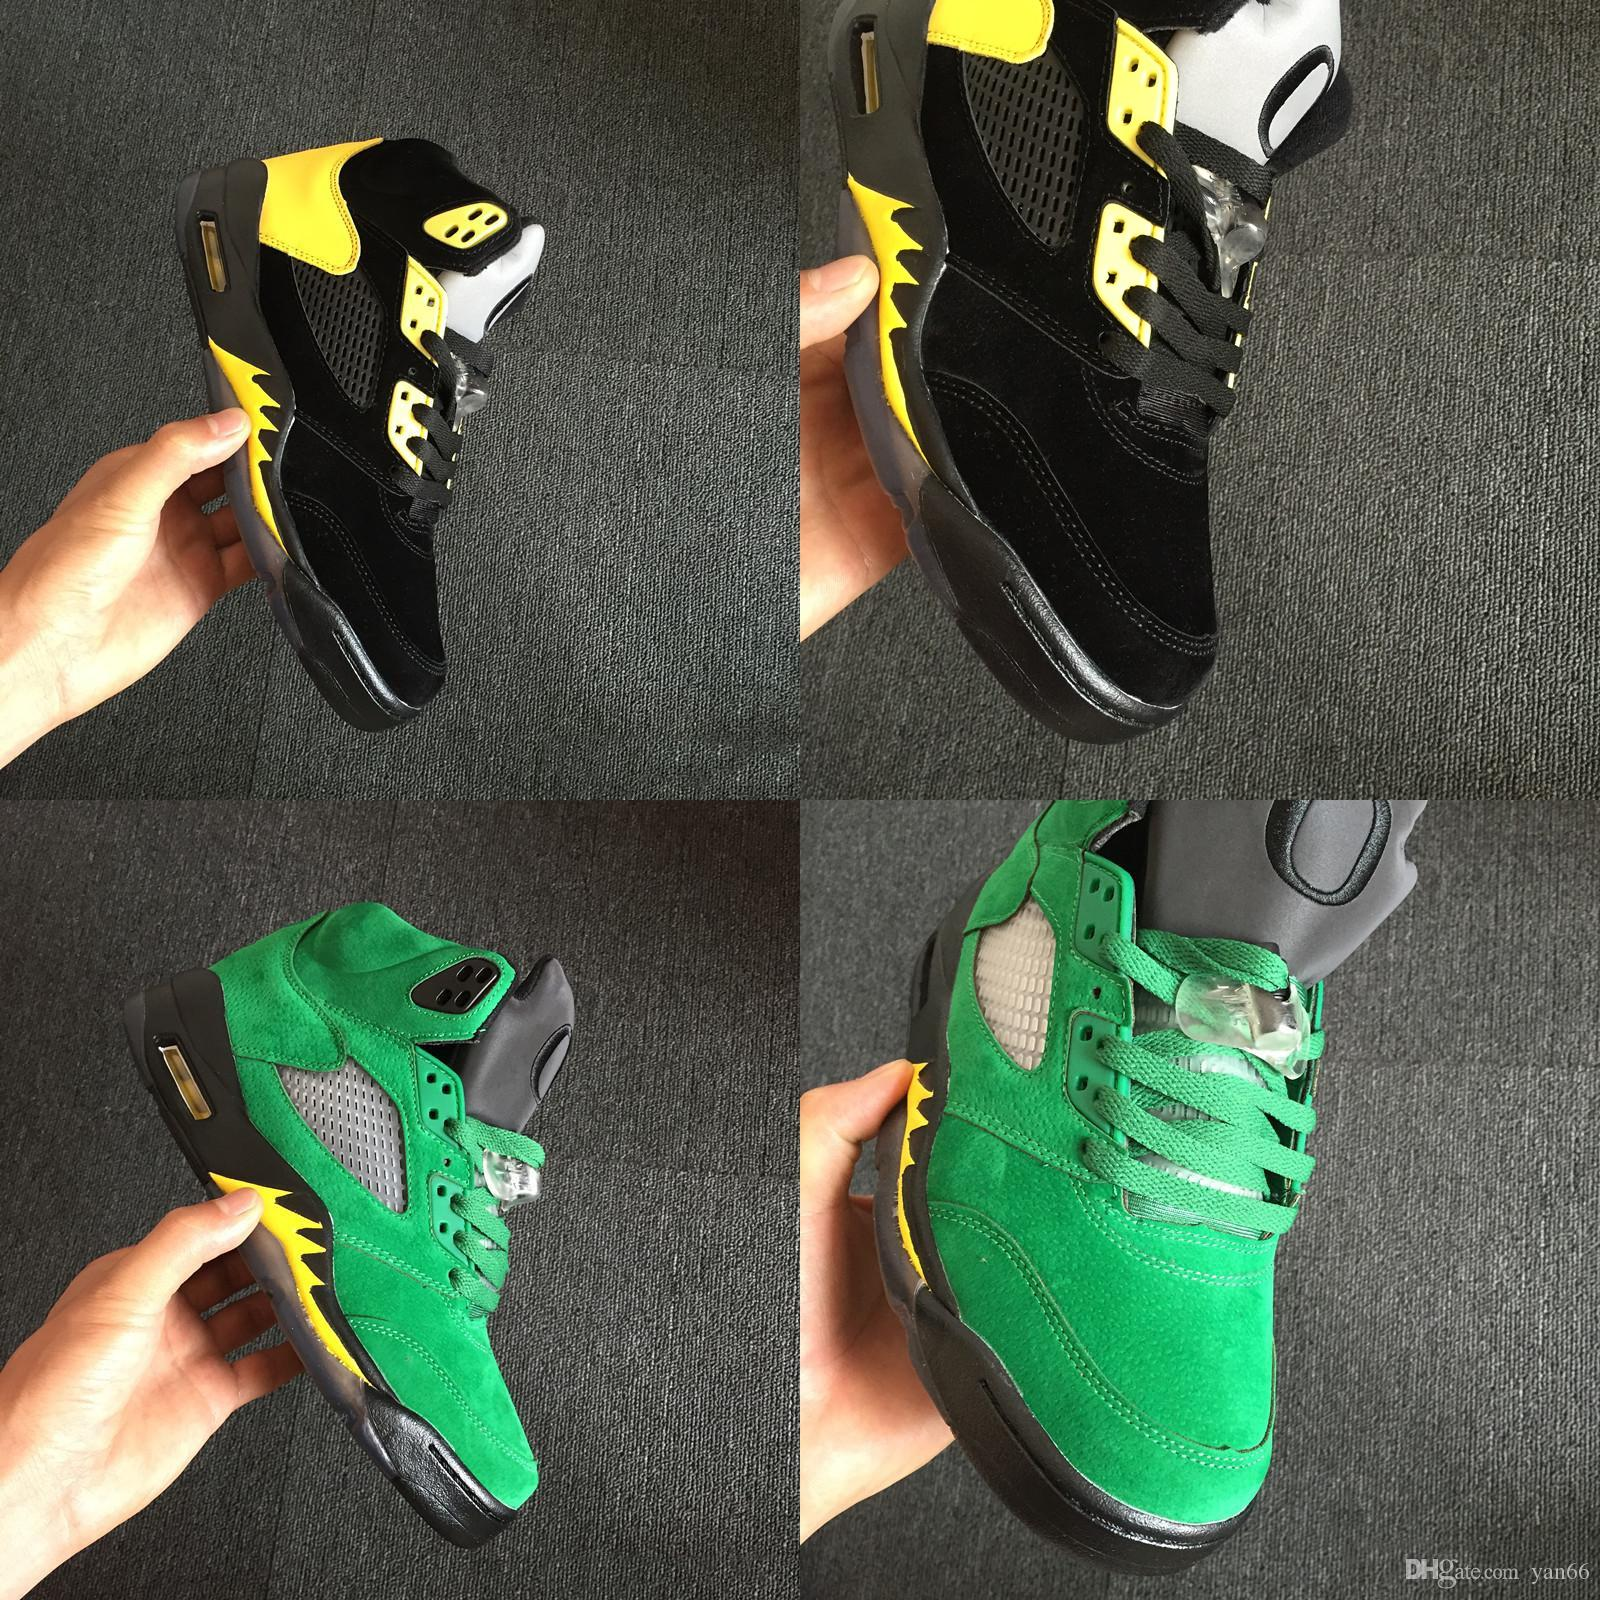 c350d879cee1 New 5 Oregon Green Black Yellow Men Basketball Shoes Sneakers ...